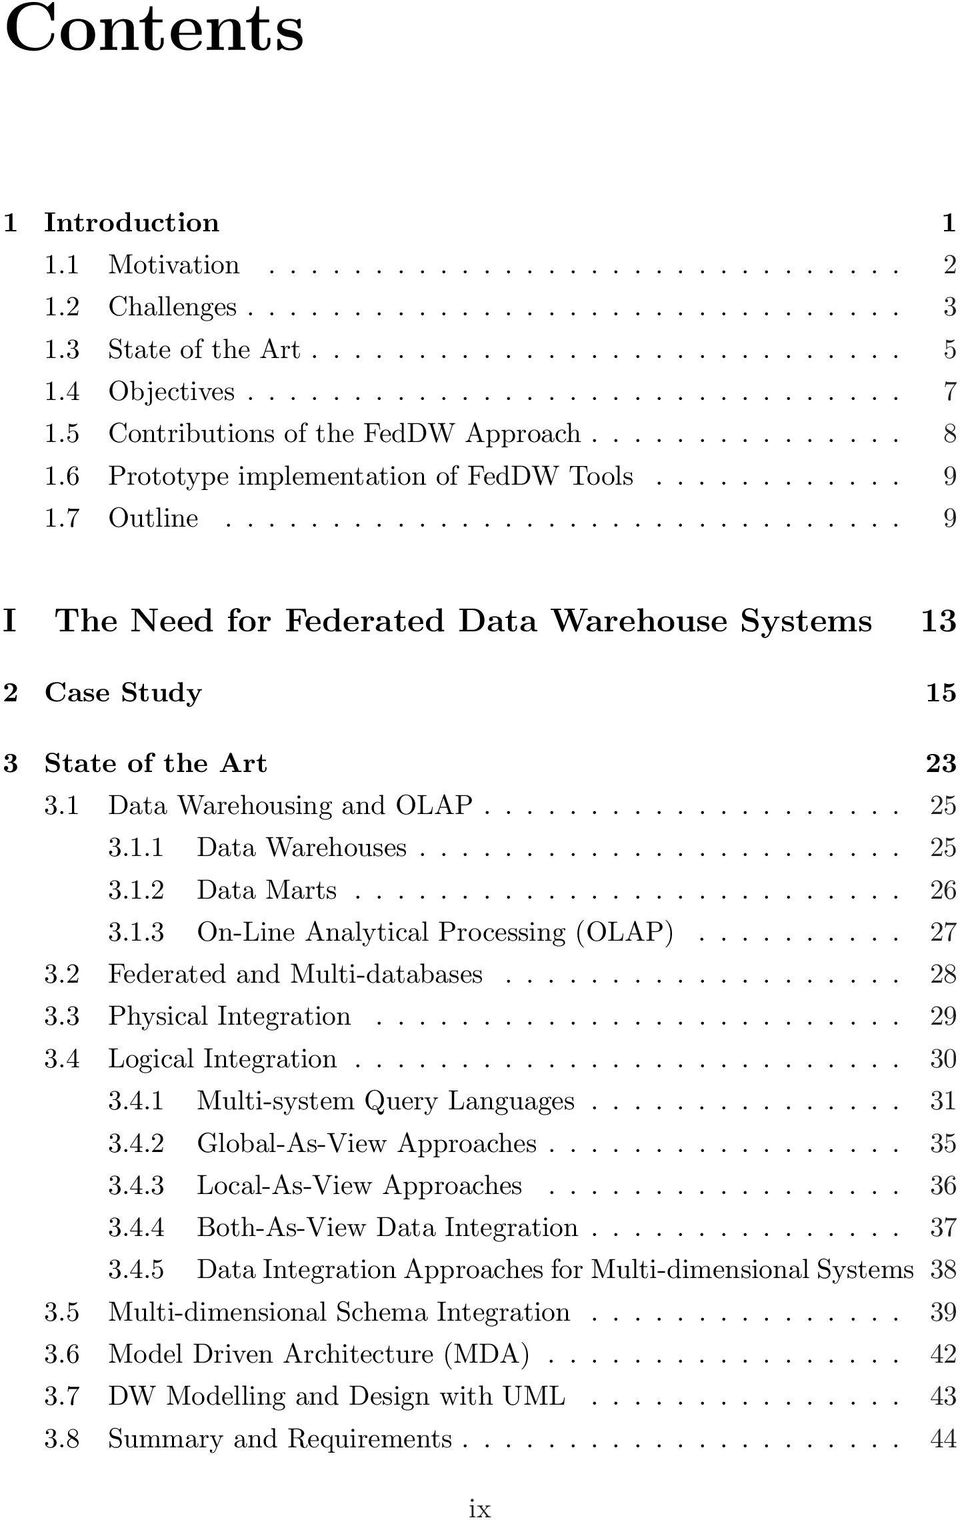 ............................... 9 I The Need for Federated Data Warehouse Systems 13 2 Case Study 15 3 State of the Art 23 3.1 Data Warehousing and OLAP.................... 25 3.1.1 Data Warehouses.